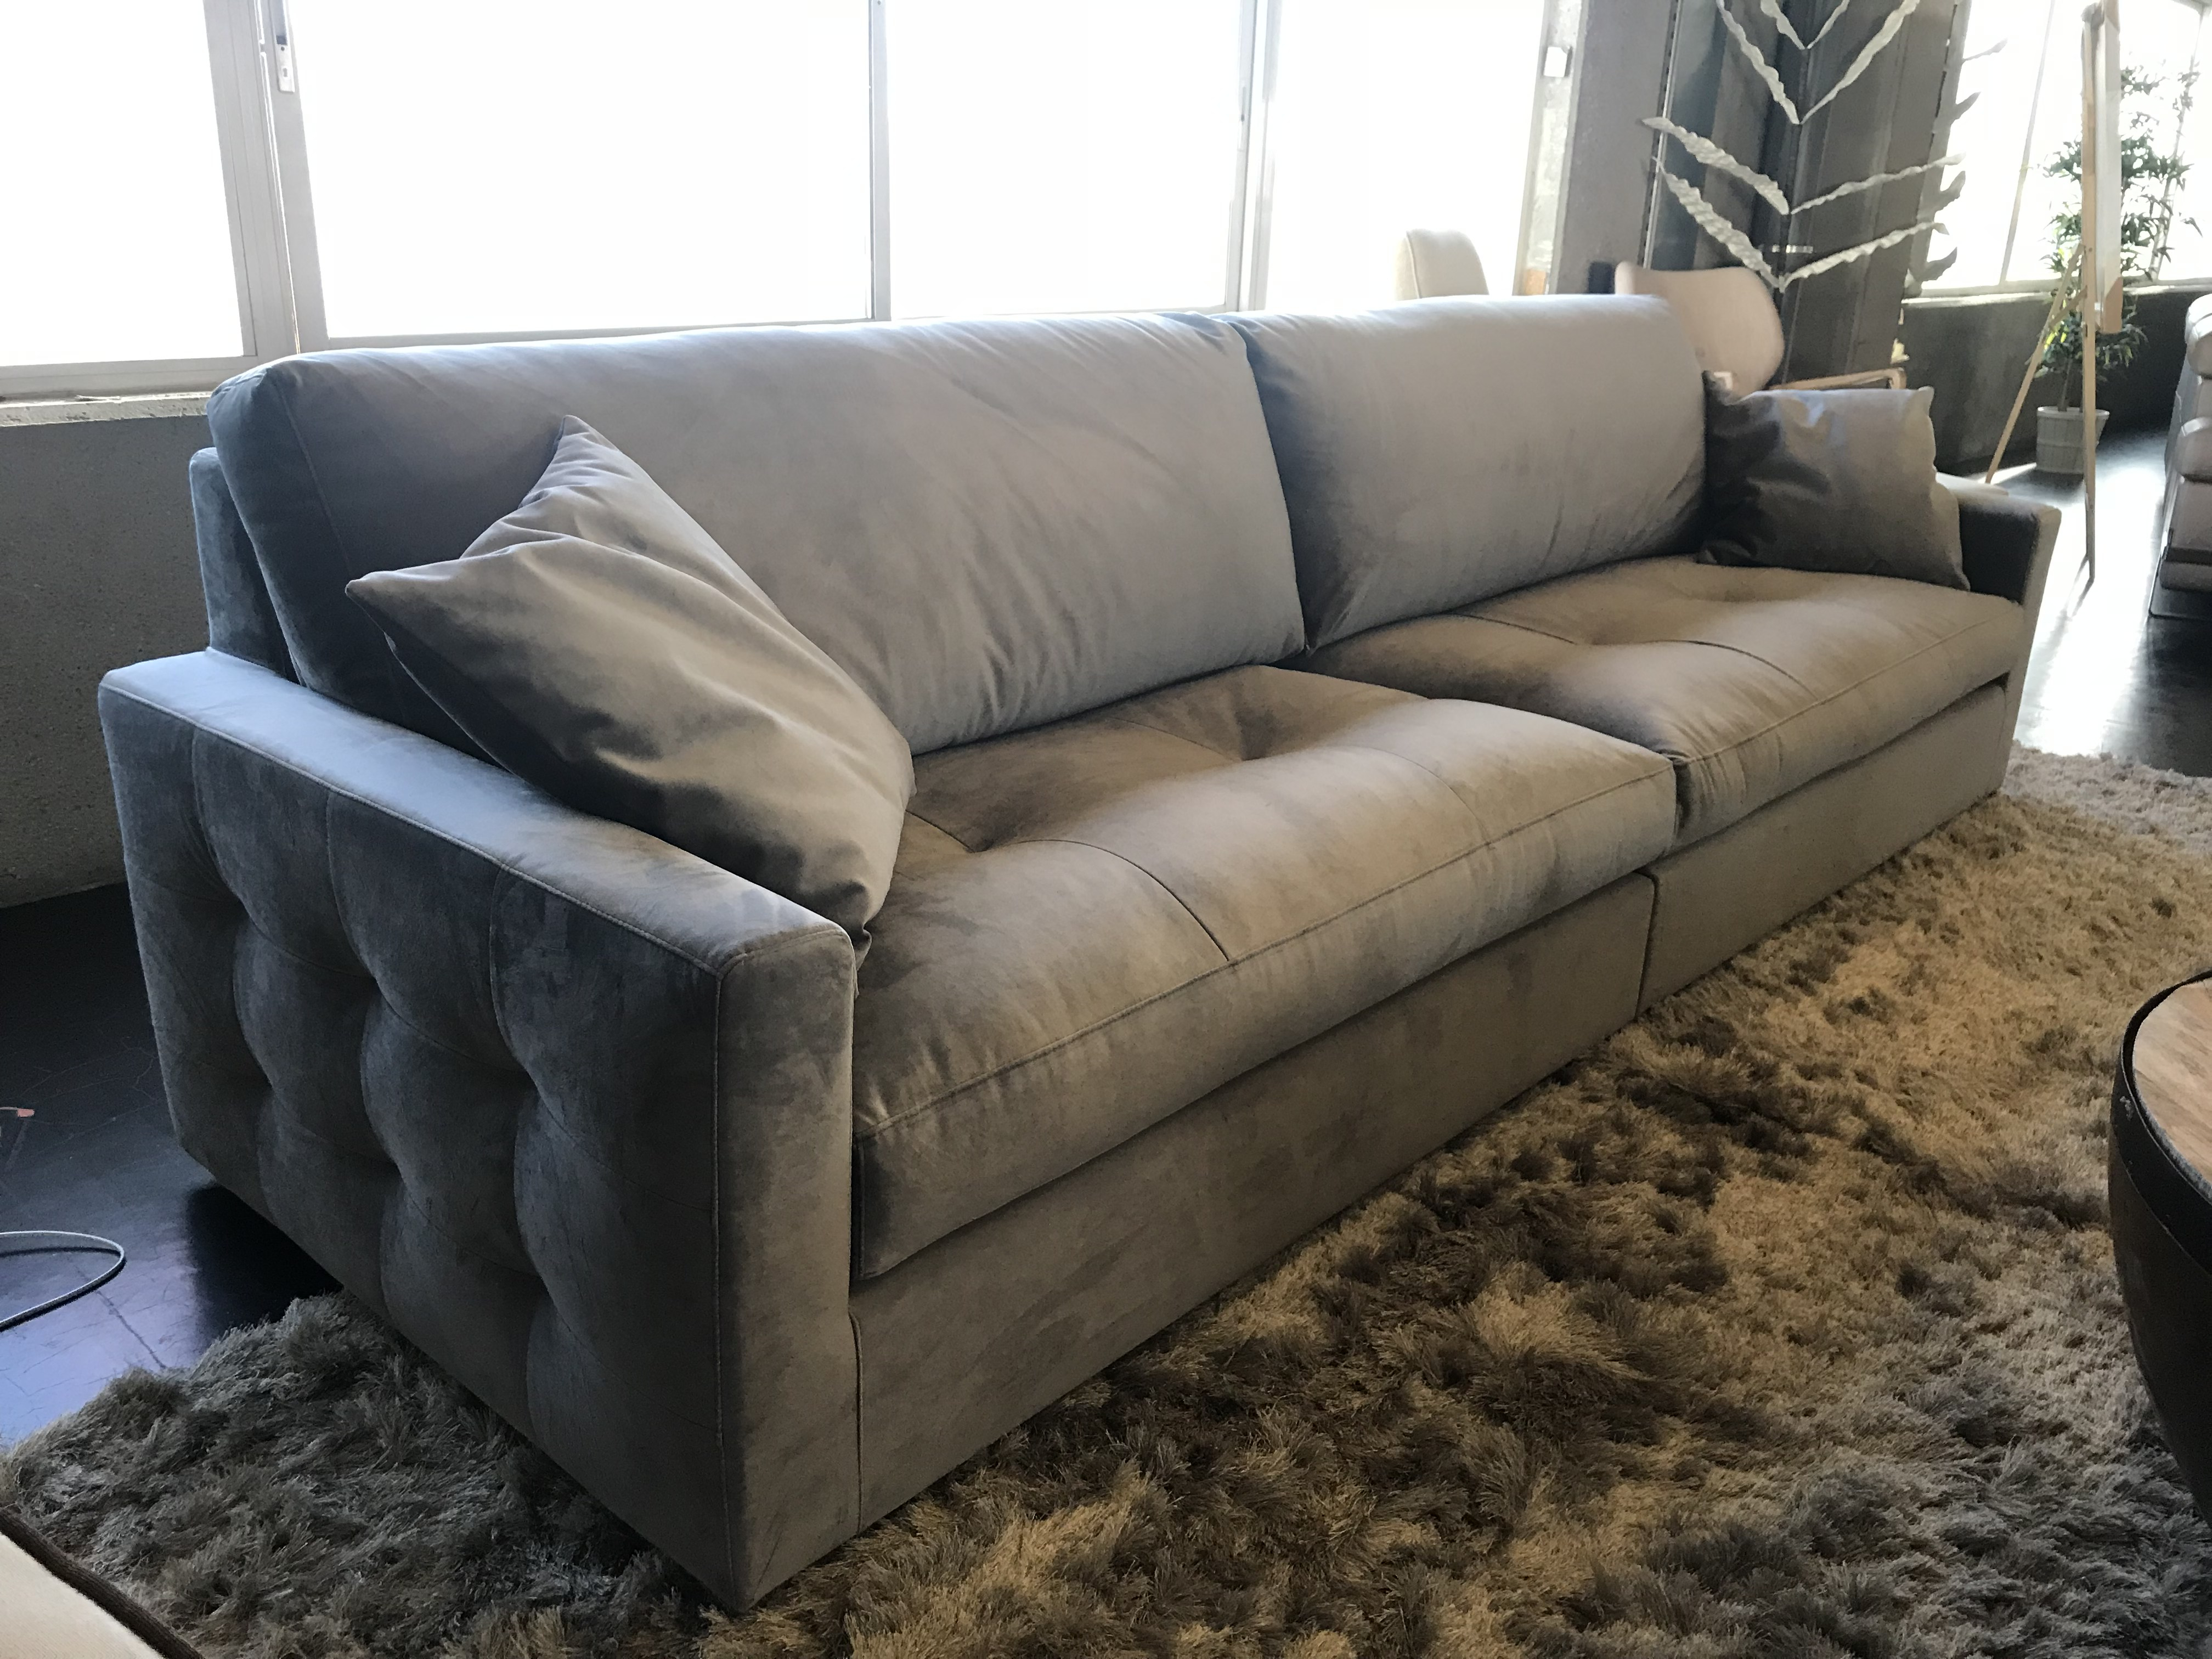 Outlet sofas Madrid J7do Outlet the sofa Pany